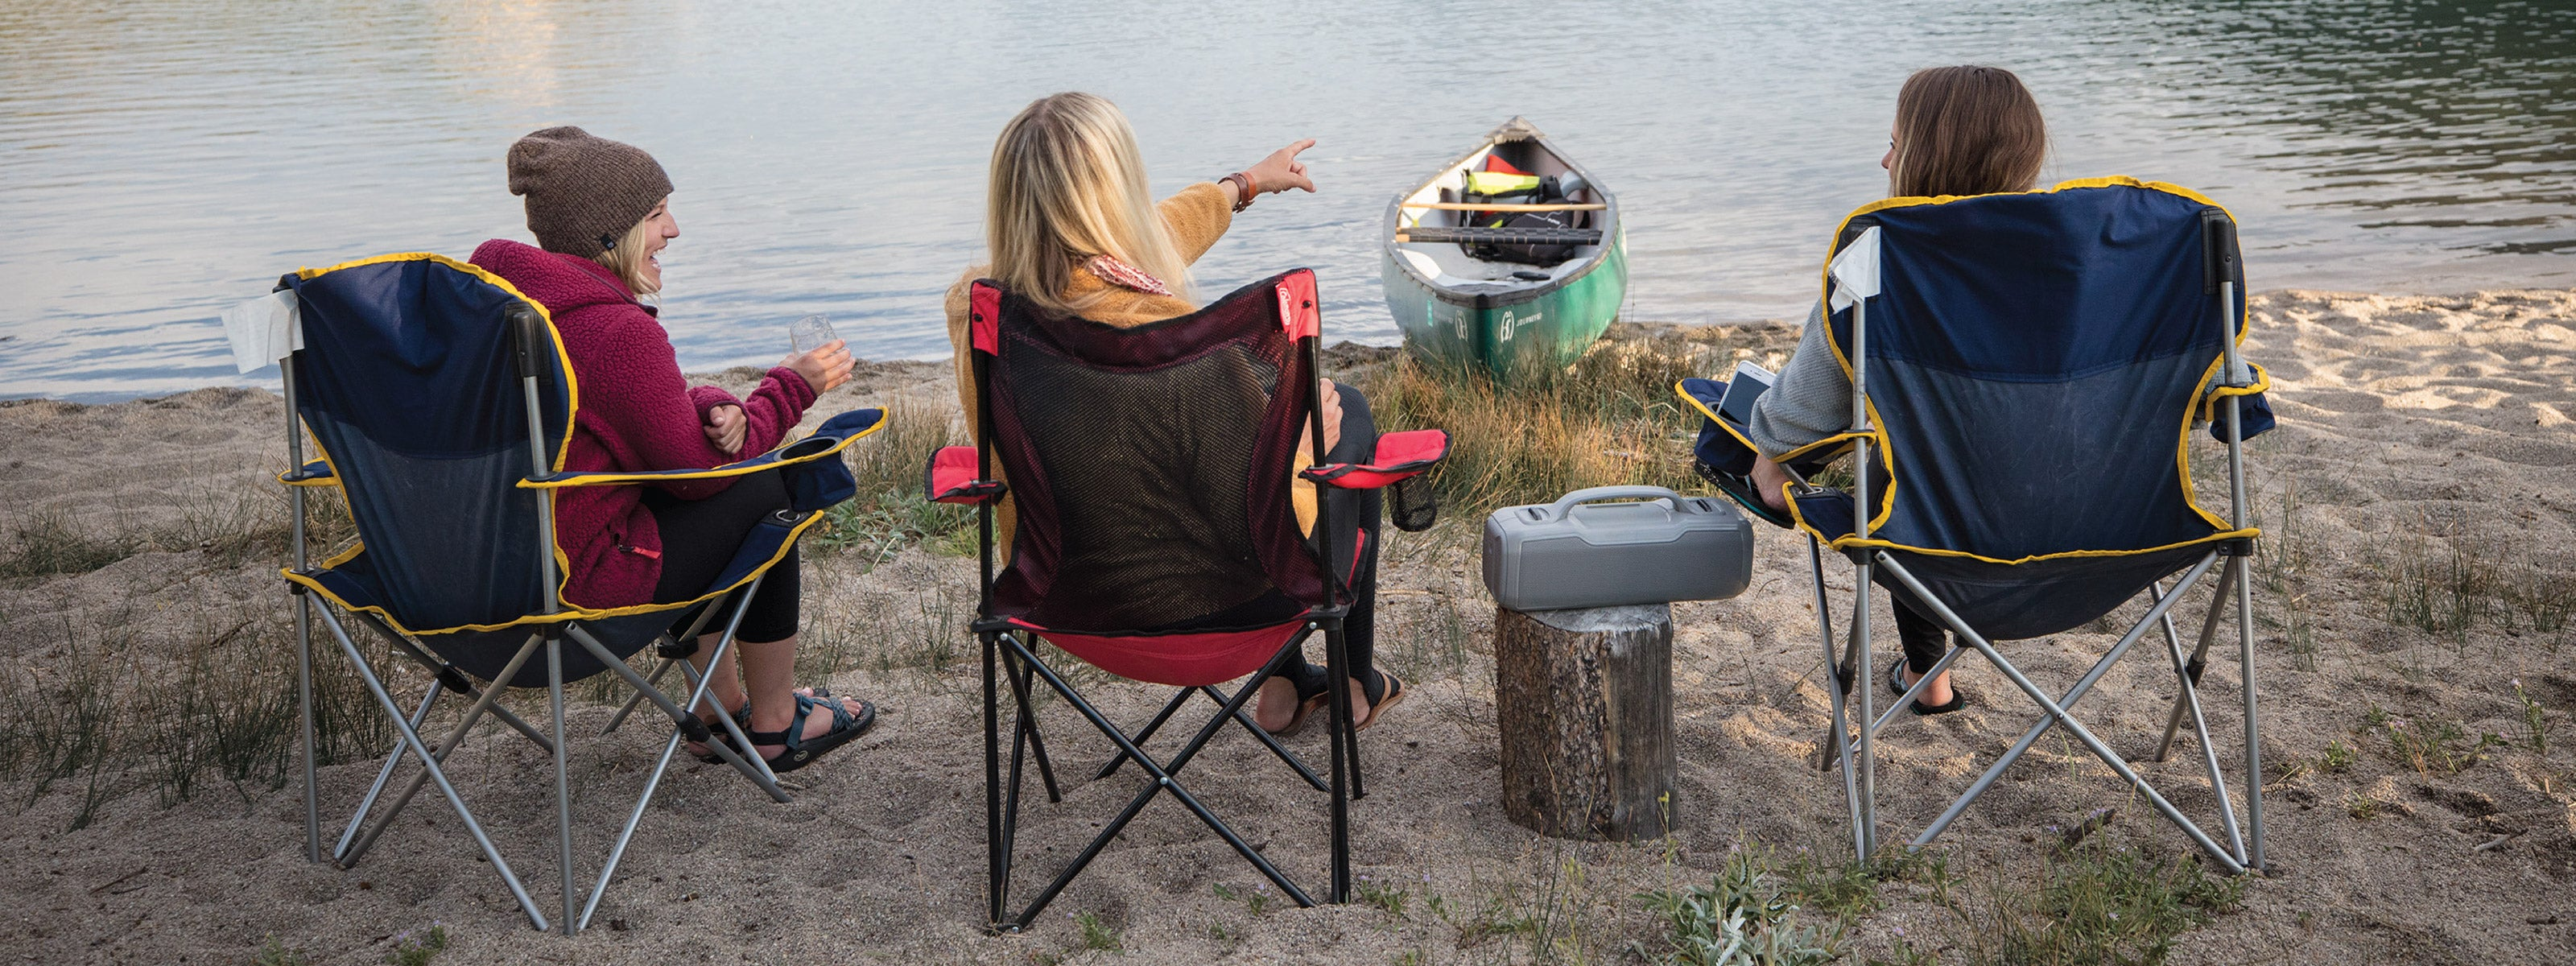 Group camping with speaker